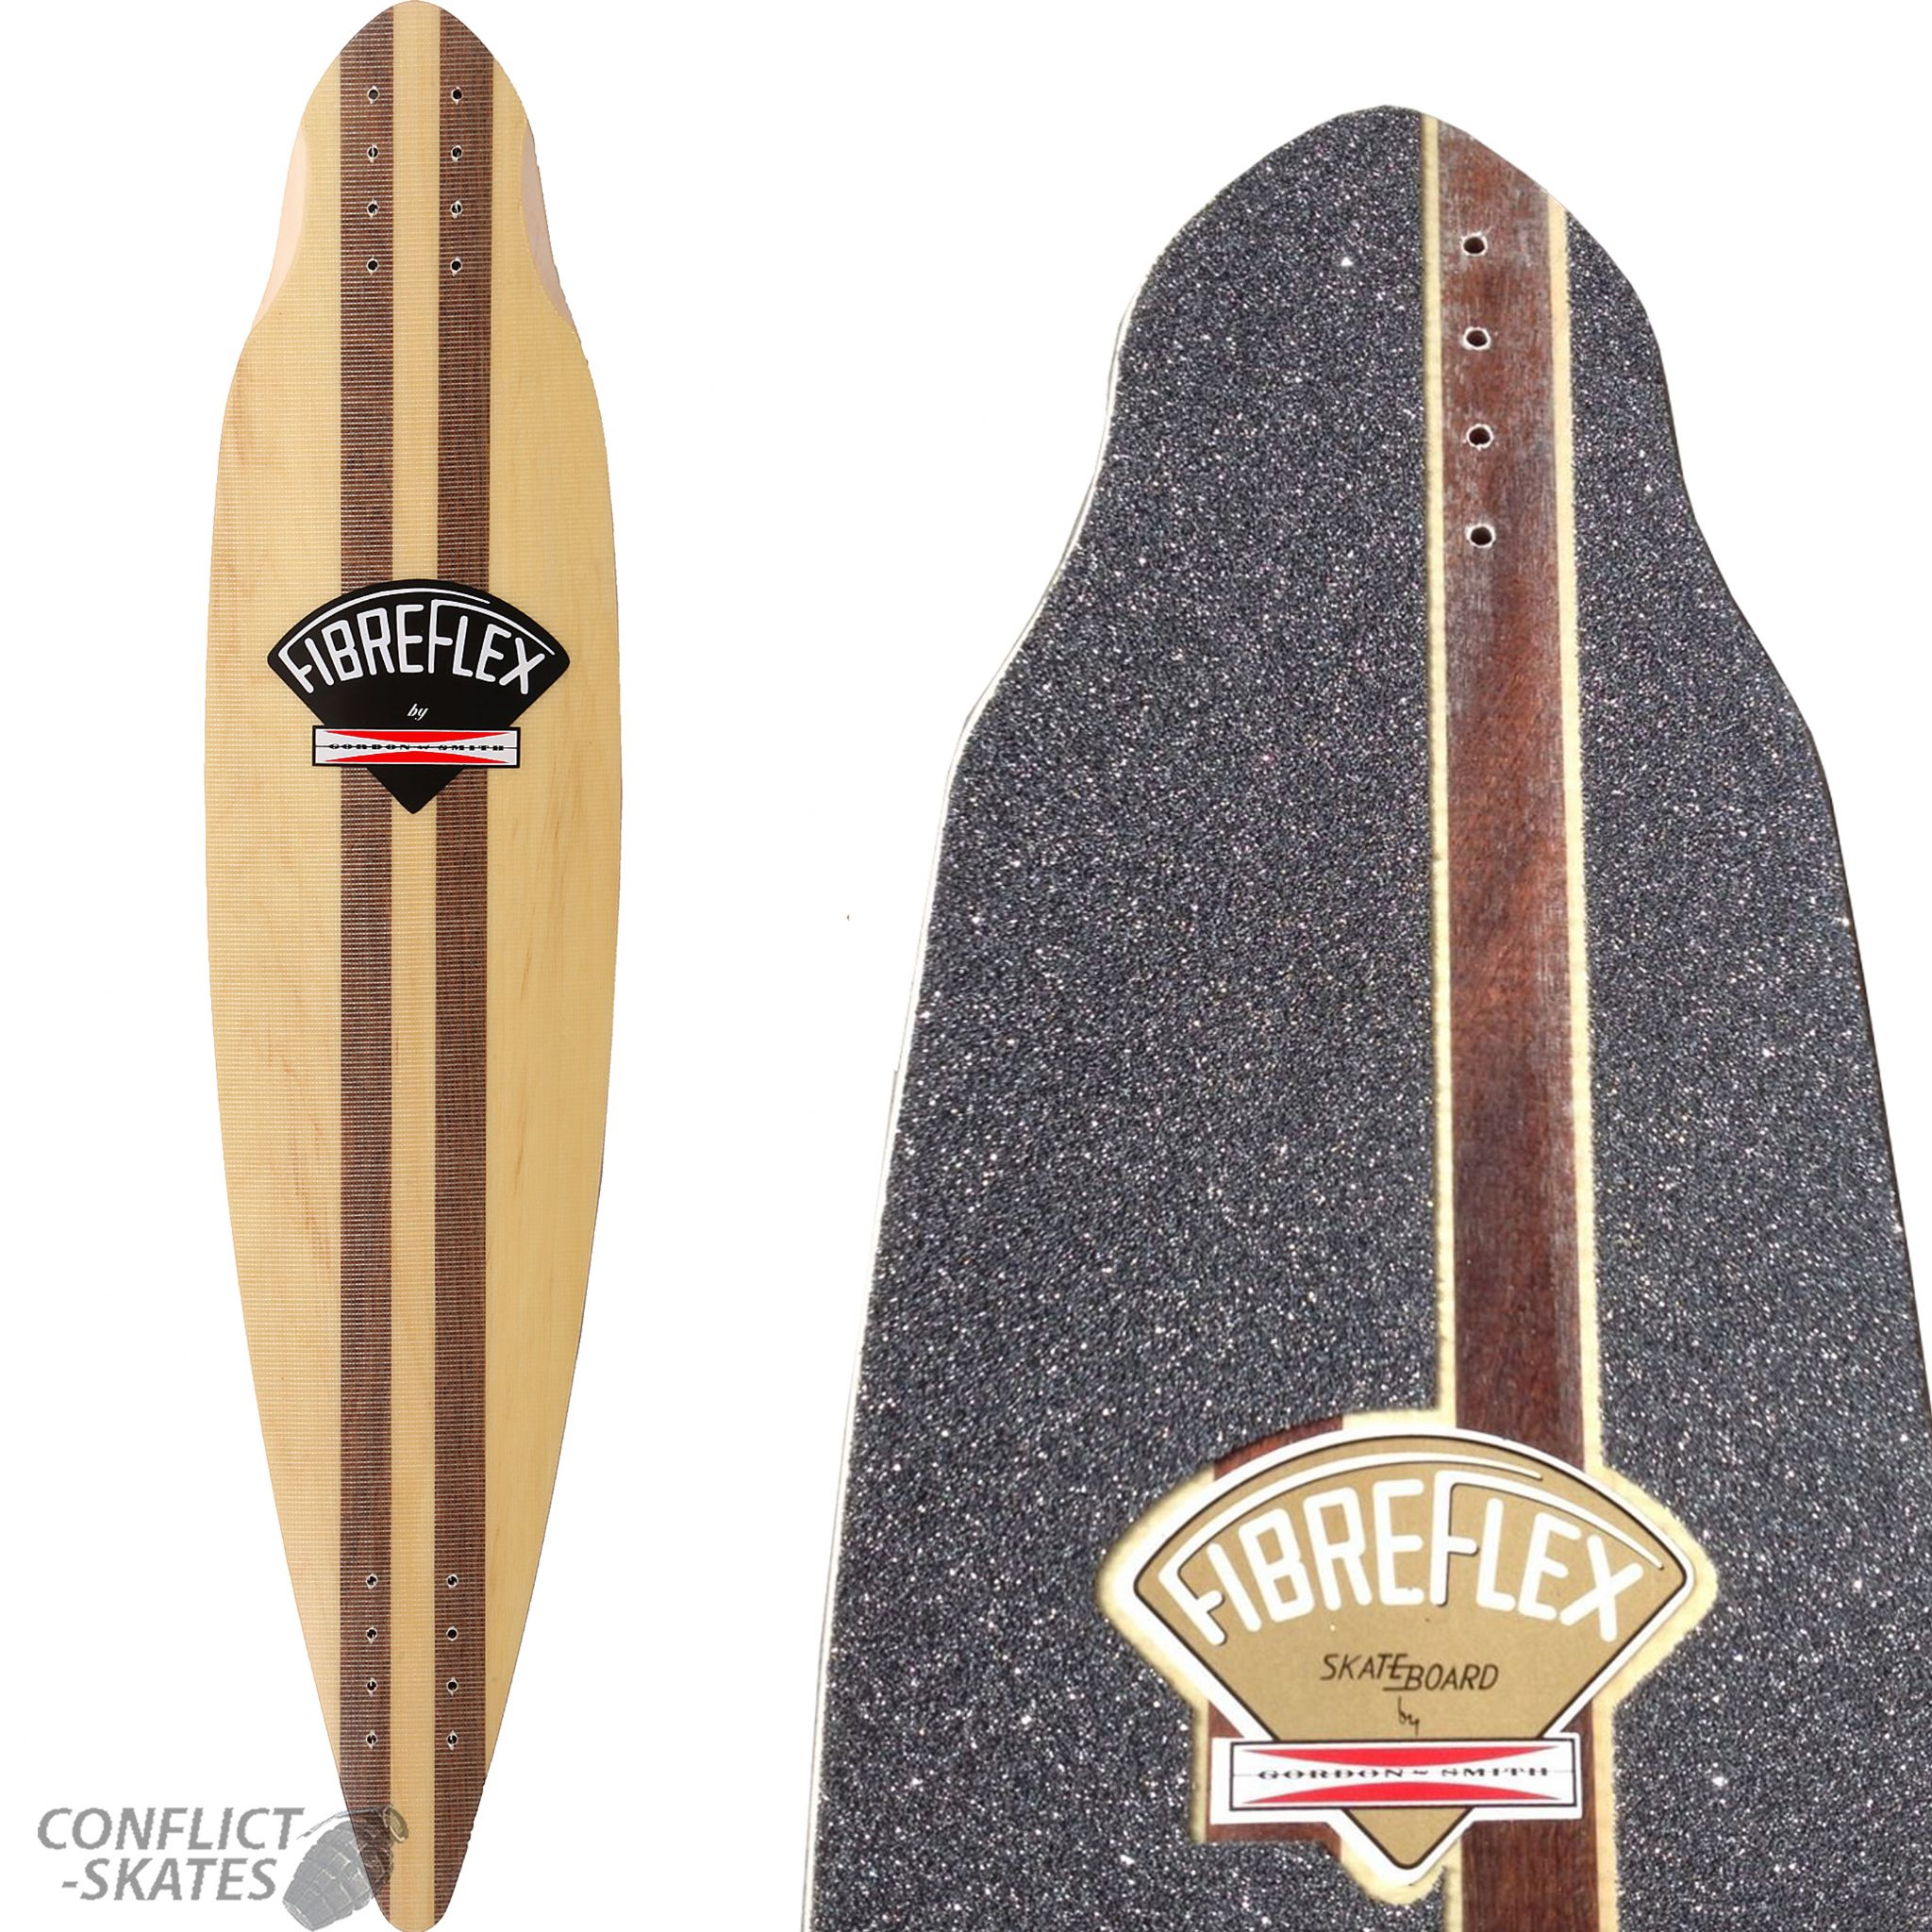 G S FIBREFLEX Pintail 38 Skateboard Longboard Deck   Grip Gordon Smith  1970s 38 x 8.25 143f0fc1348